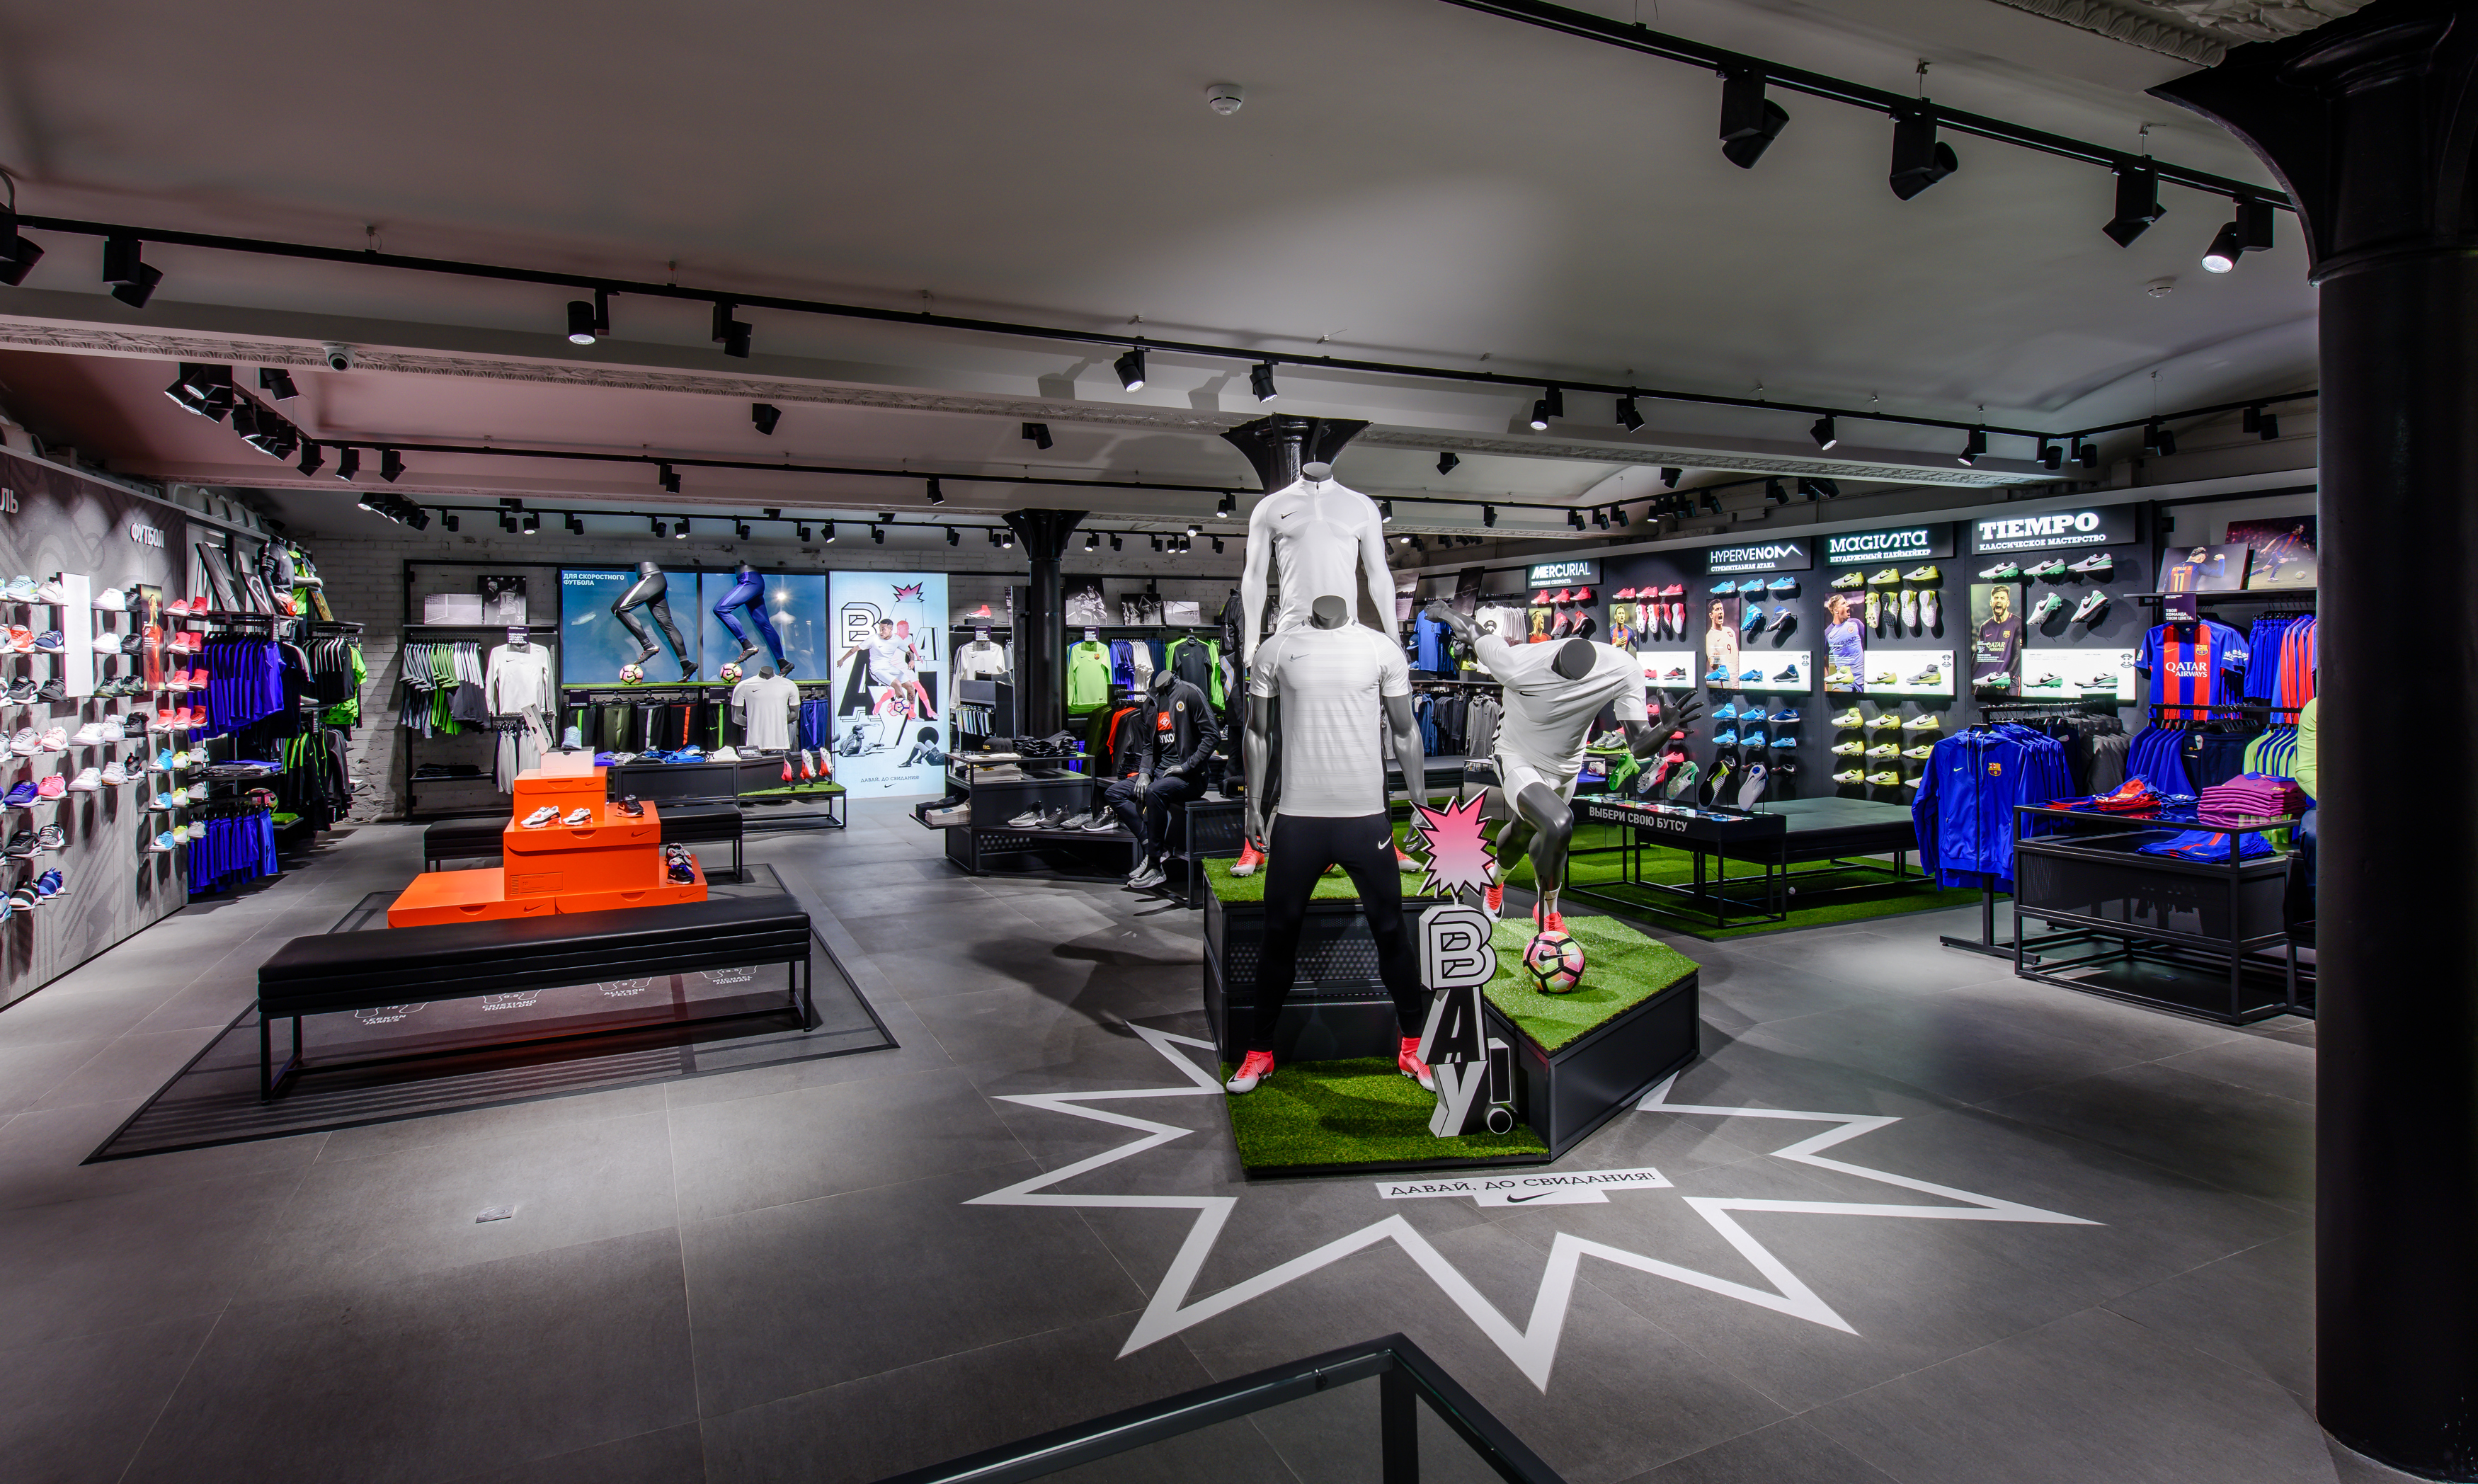 first look inside nike moscow nike news. Black Bedroom Furniture Sets. Home Design Ideas